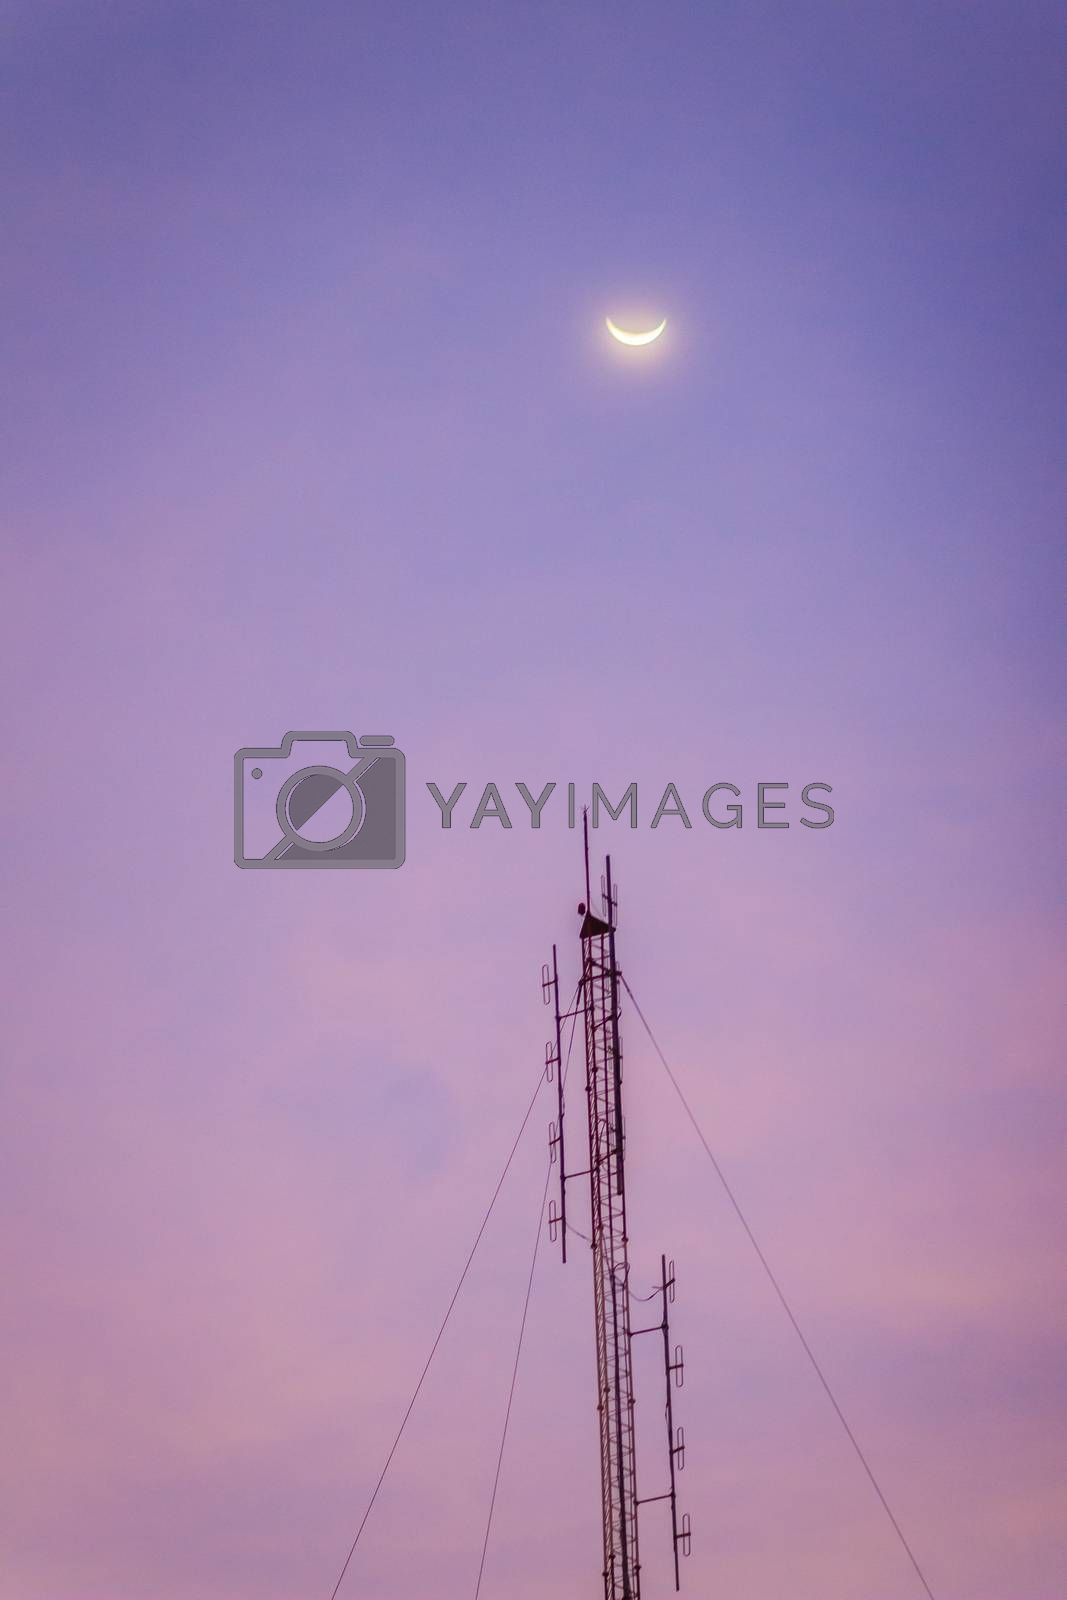 Royalty free image of View of the moon on the dusk sky and the folded dipole radio ant by kwhisky